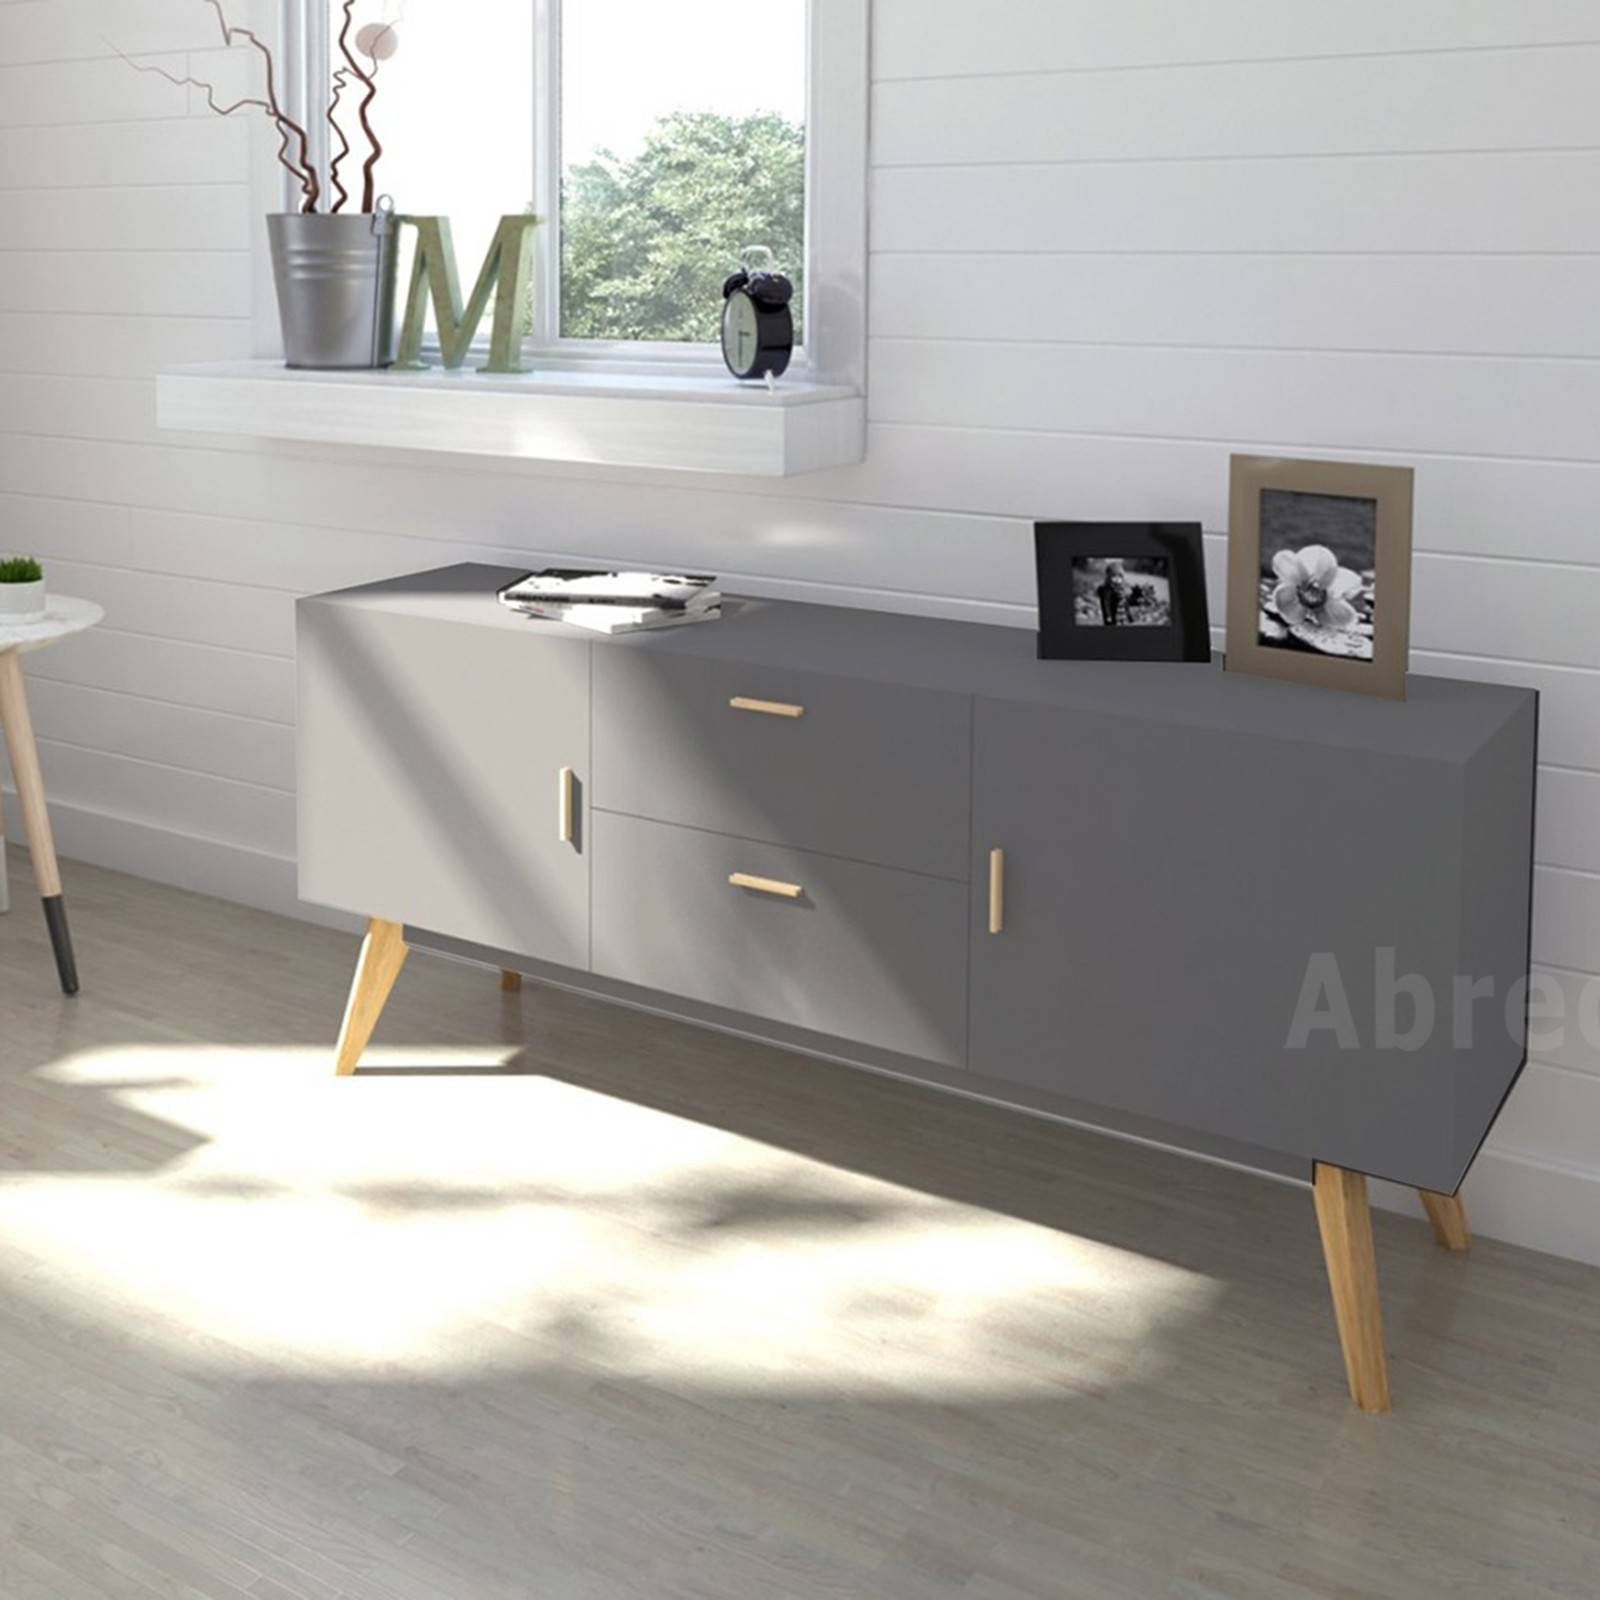 Scandinavian Retro Style White Sideboard Abreo Home Furniture Within 2017 Scandinavian Sideboards (#12 of 15)